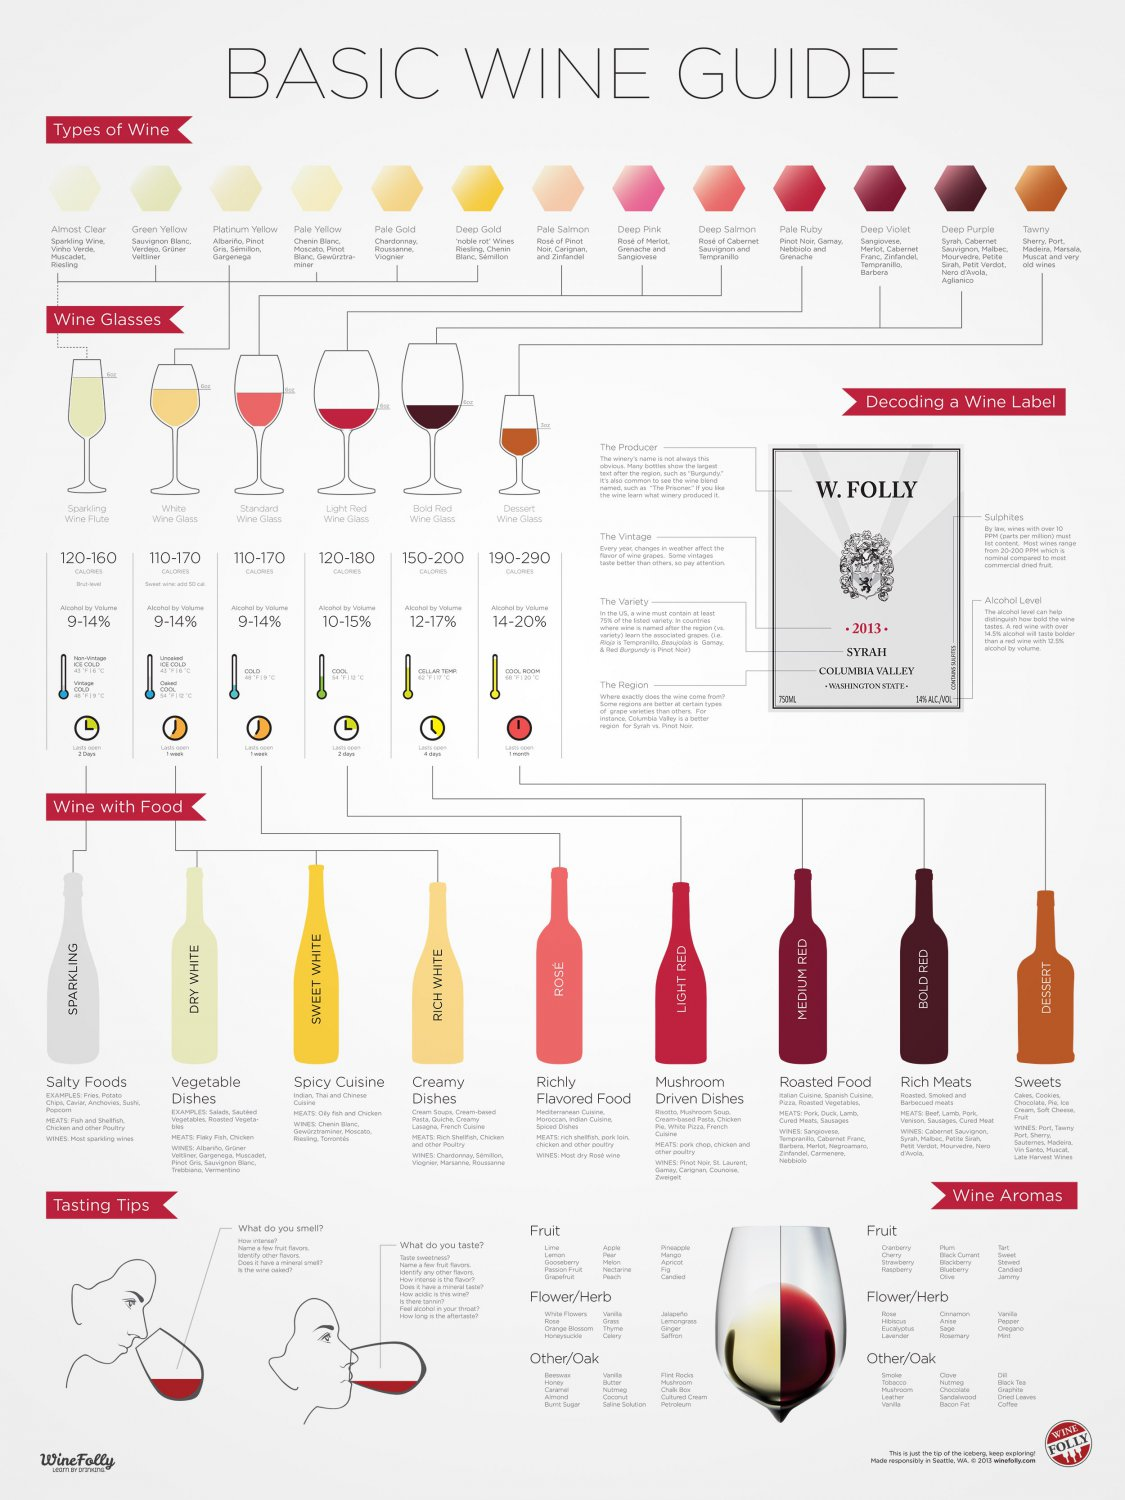 Basic Wine Guide Chart  13x19 inches Poster Print